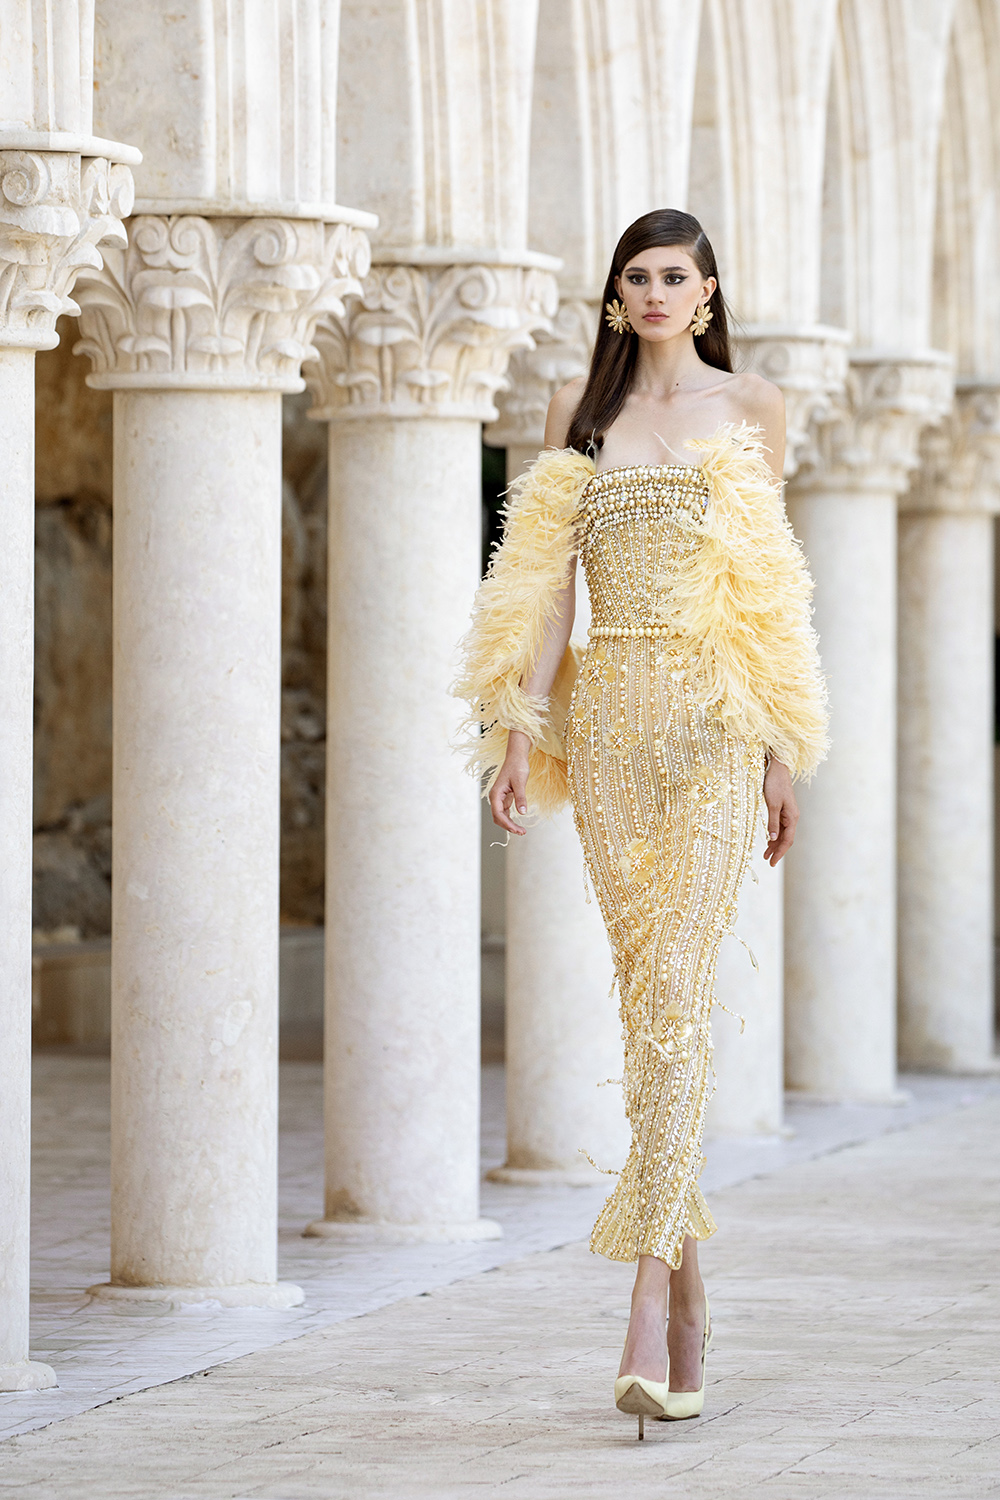 Georges Hobeika Fall 2021 Couture Collecdtion I DreaminLace.com #couture #fashionblog